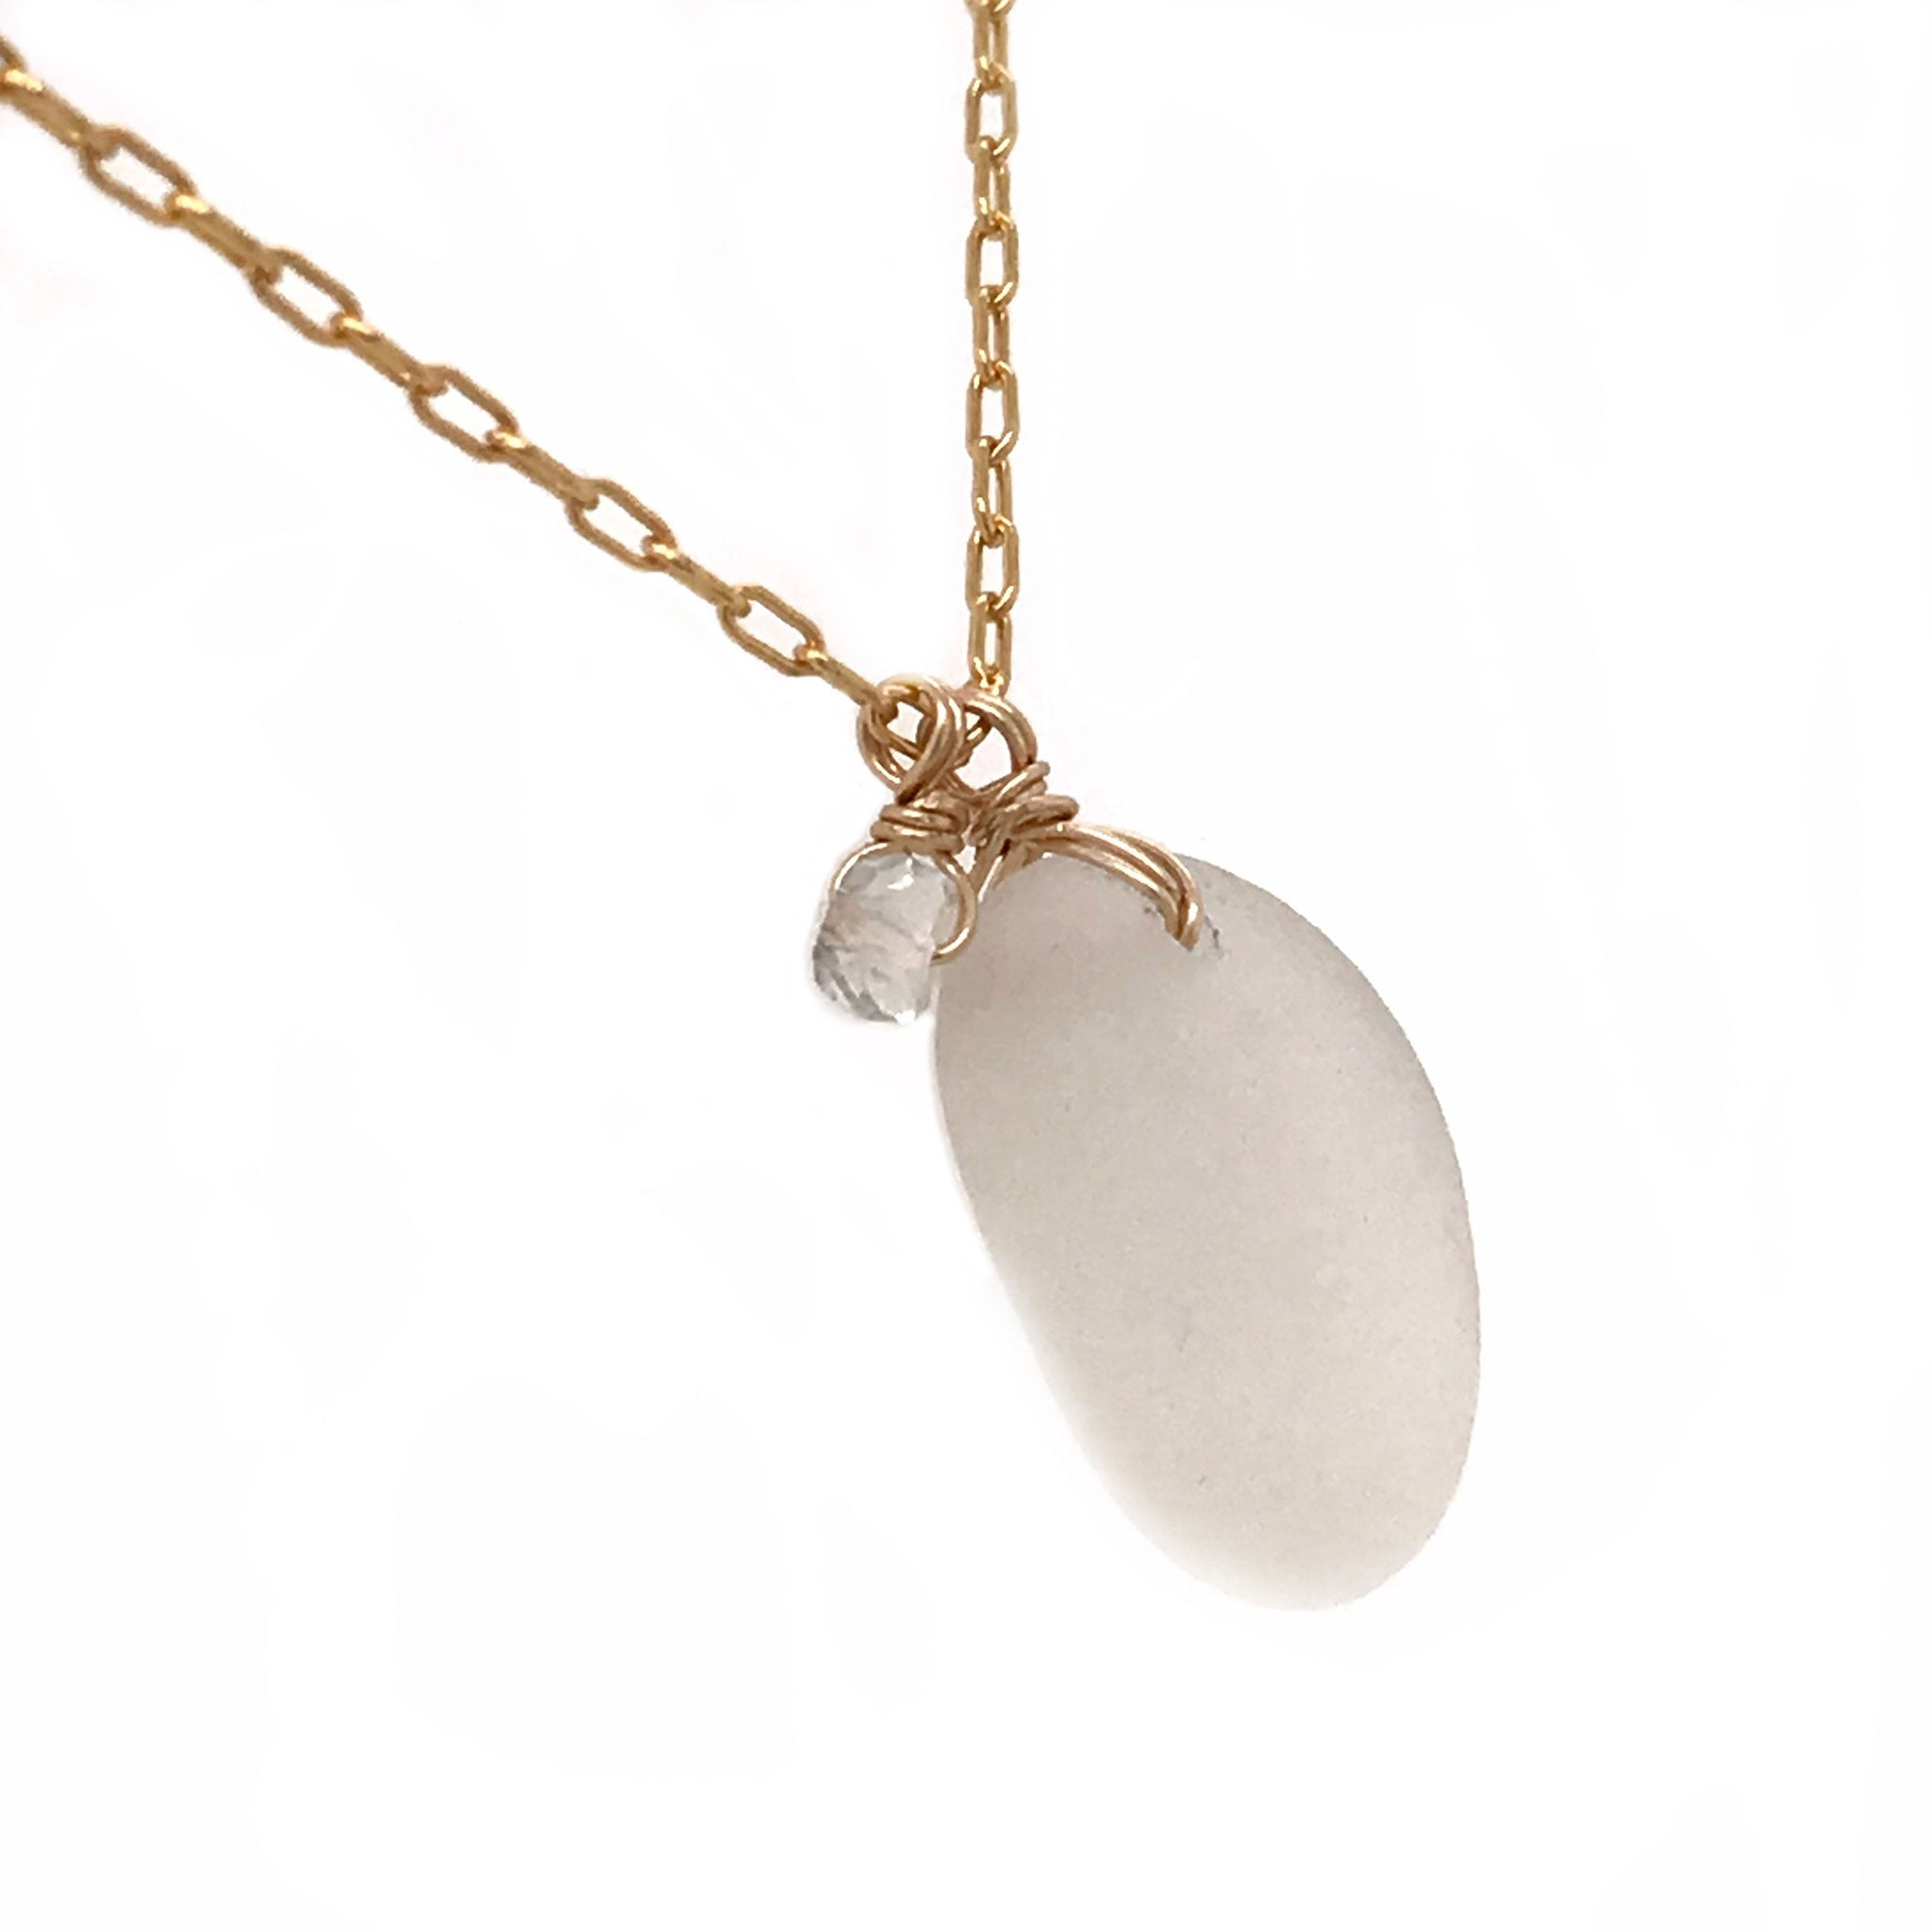 clear white beach glass on gold necklace kriket broadhurst jewellery